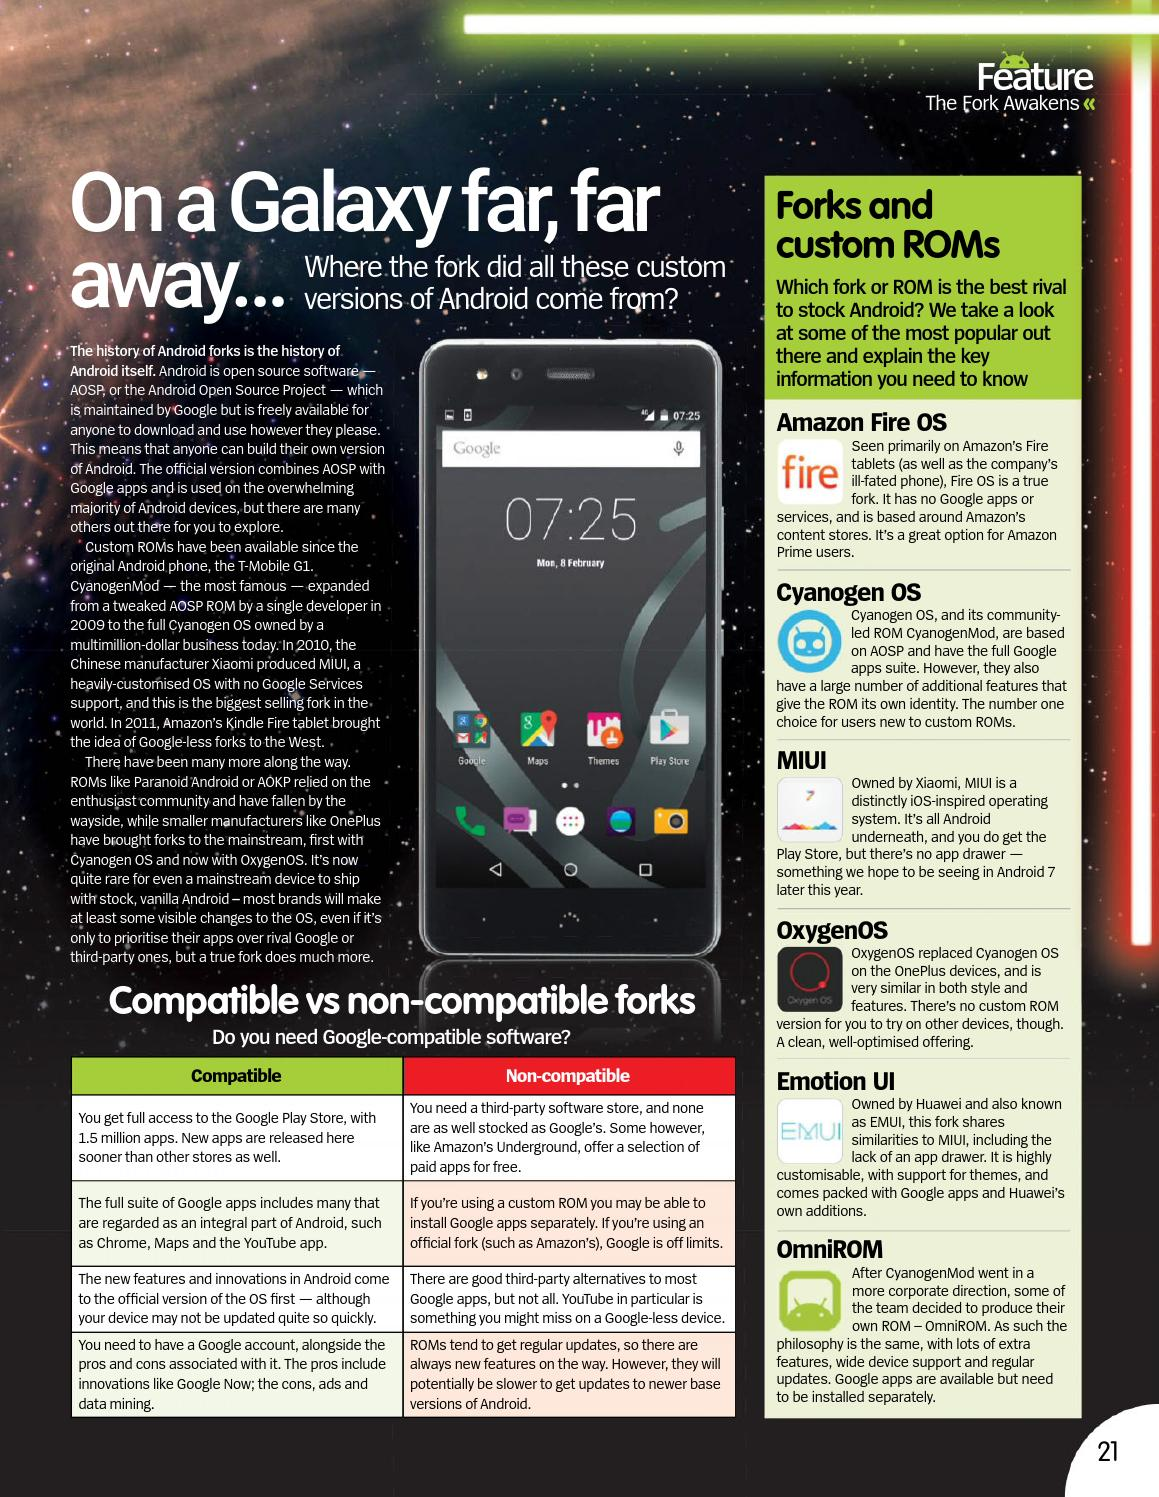 Android magazine issue 63 2016 by rickpham - issuu